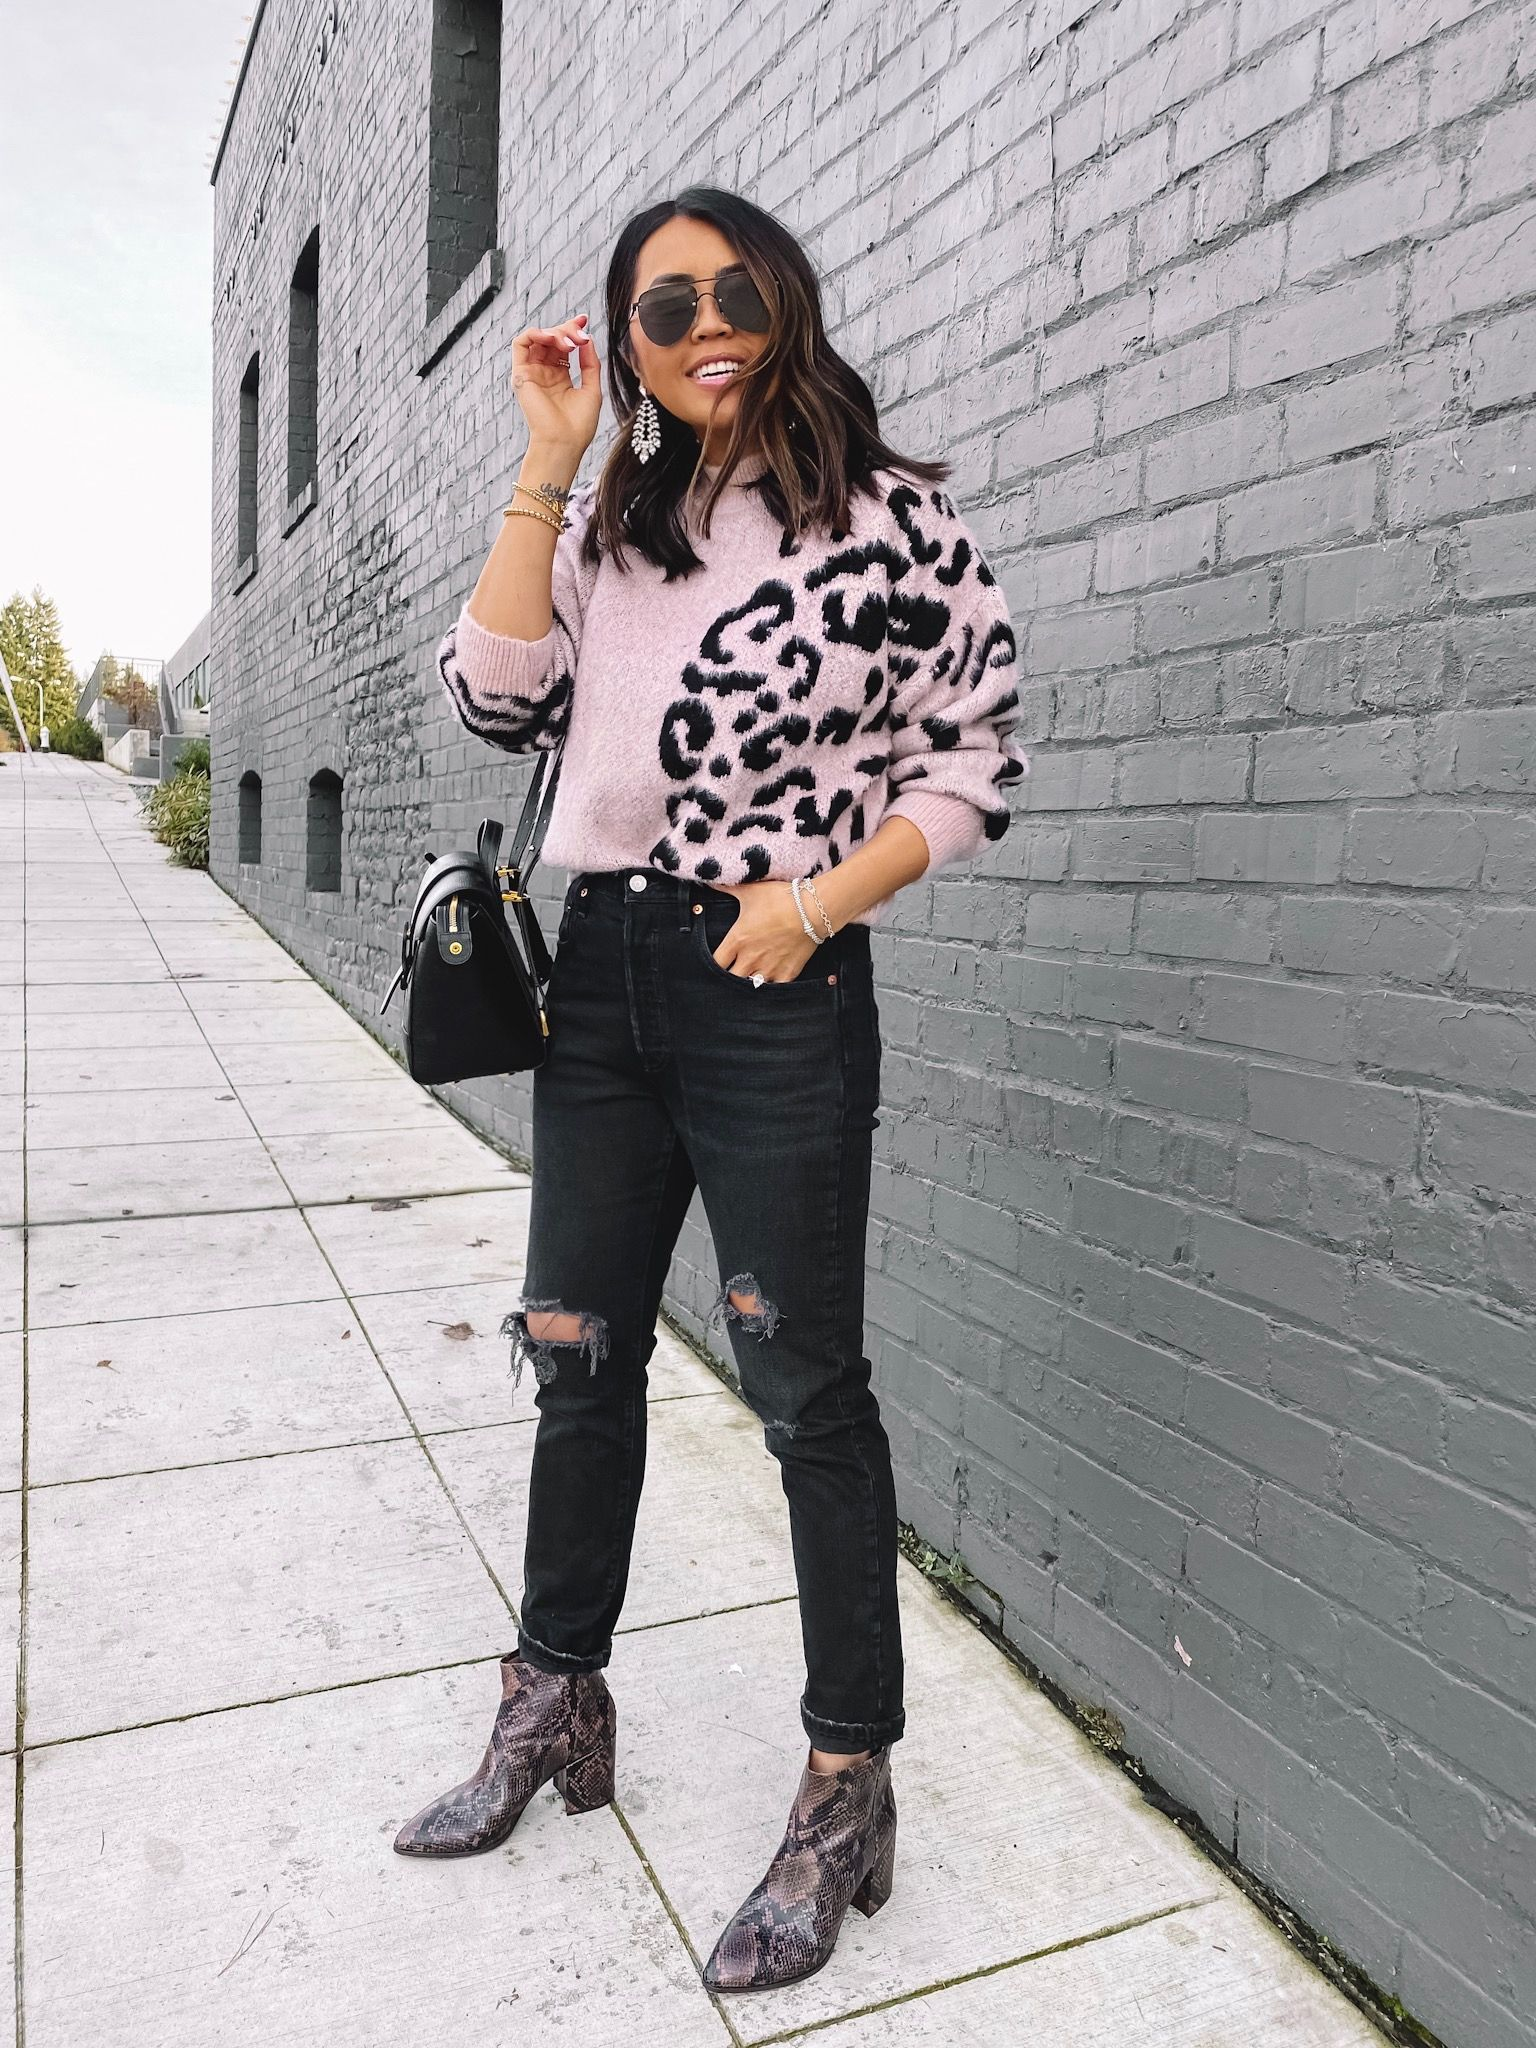 Nordstrom Black Friday 2019 And Cyber Monday Deals In 2020 Fall Outfits Black Friday 2019 Nordstrom